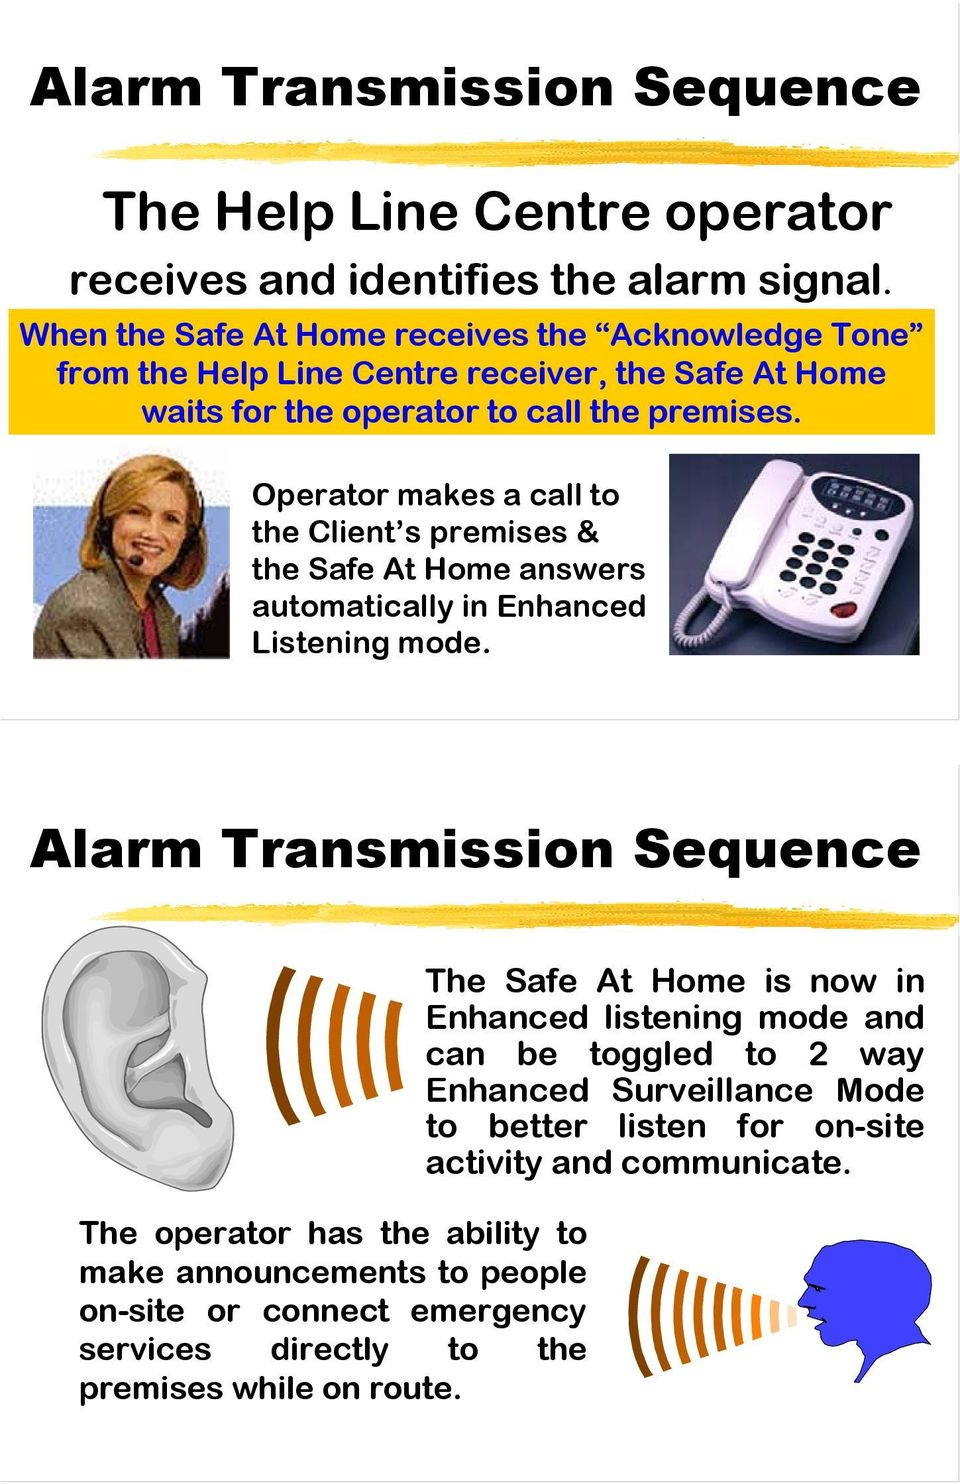 Operator makes a call to the Client s premises & the Safe At Home answers automatically in Enhanced Listening mode.